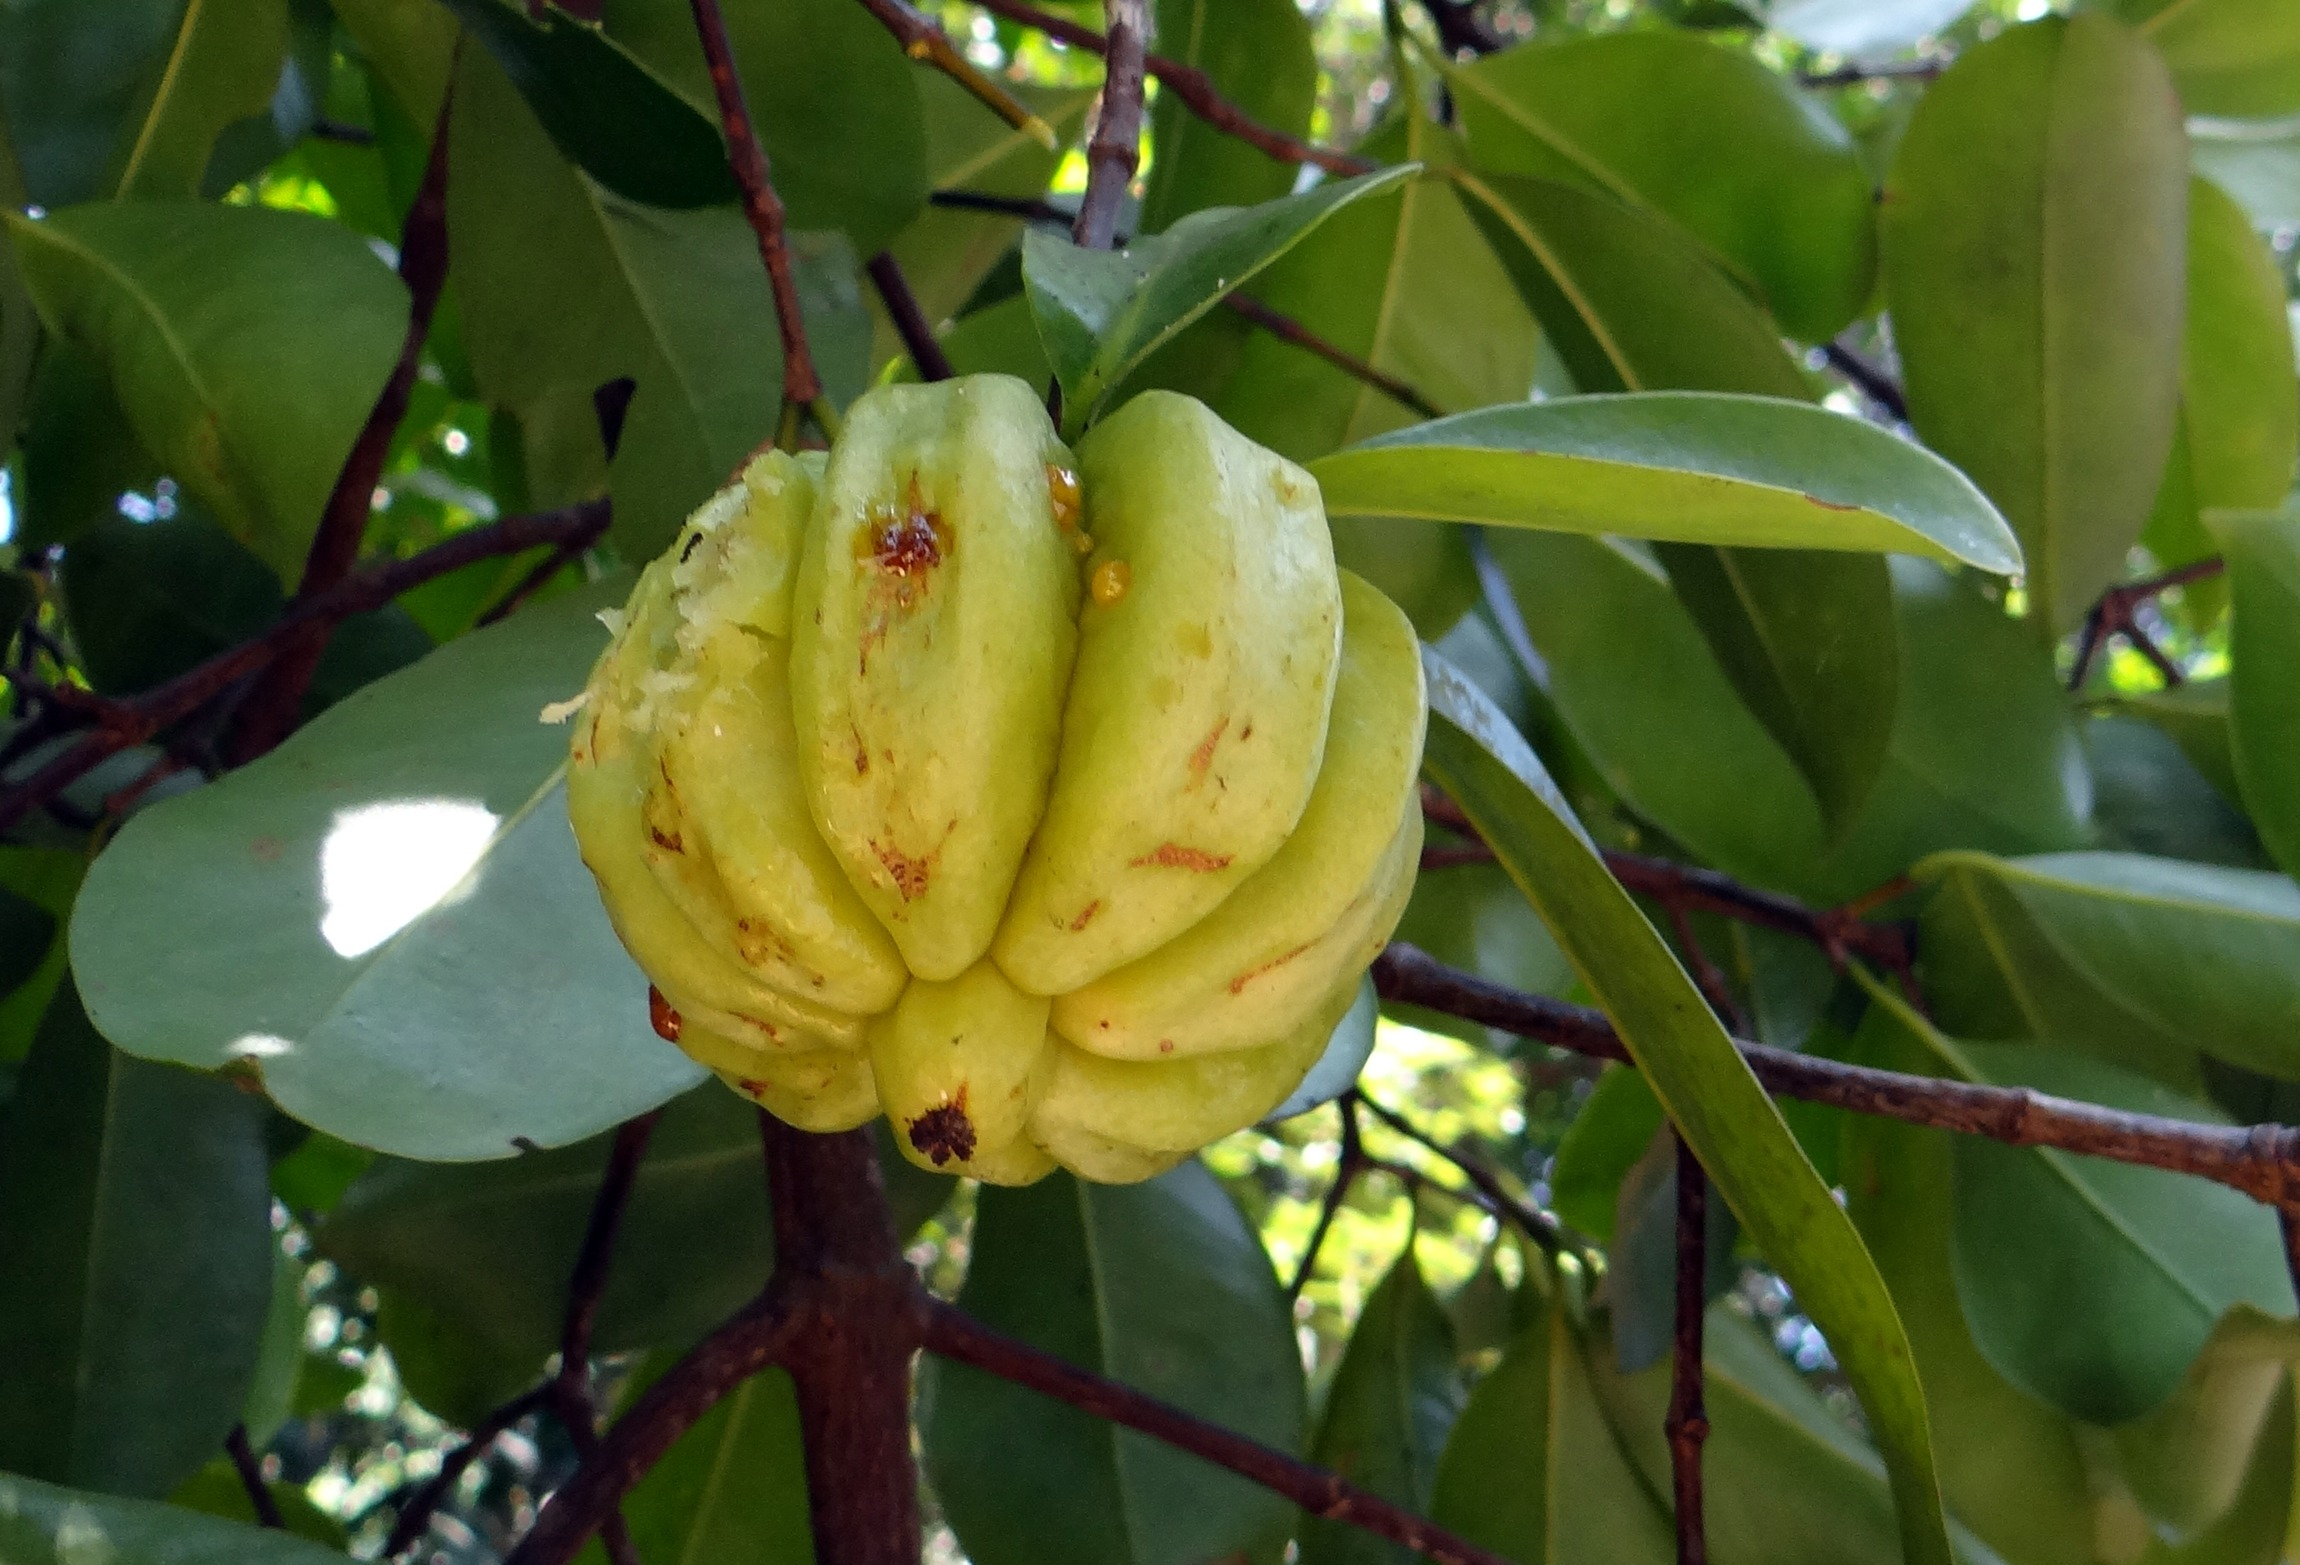 Garcinia Cambogia Fruit On The Tree Free Image